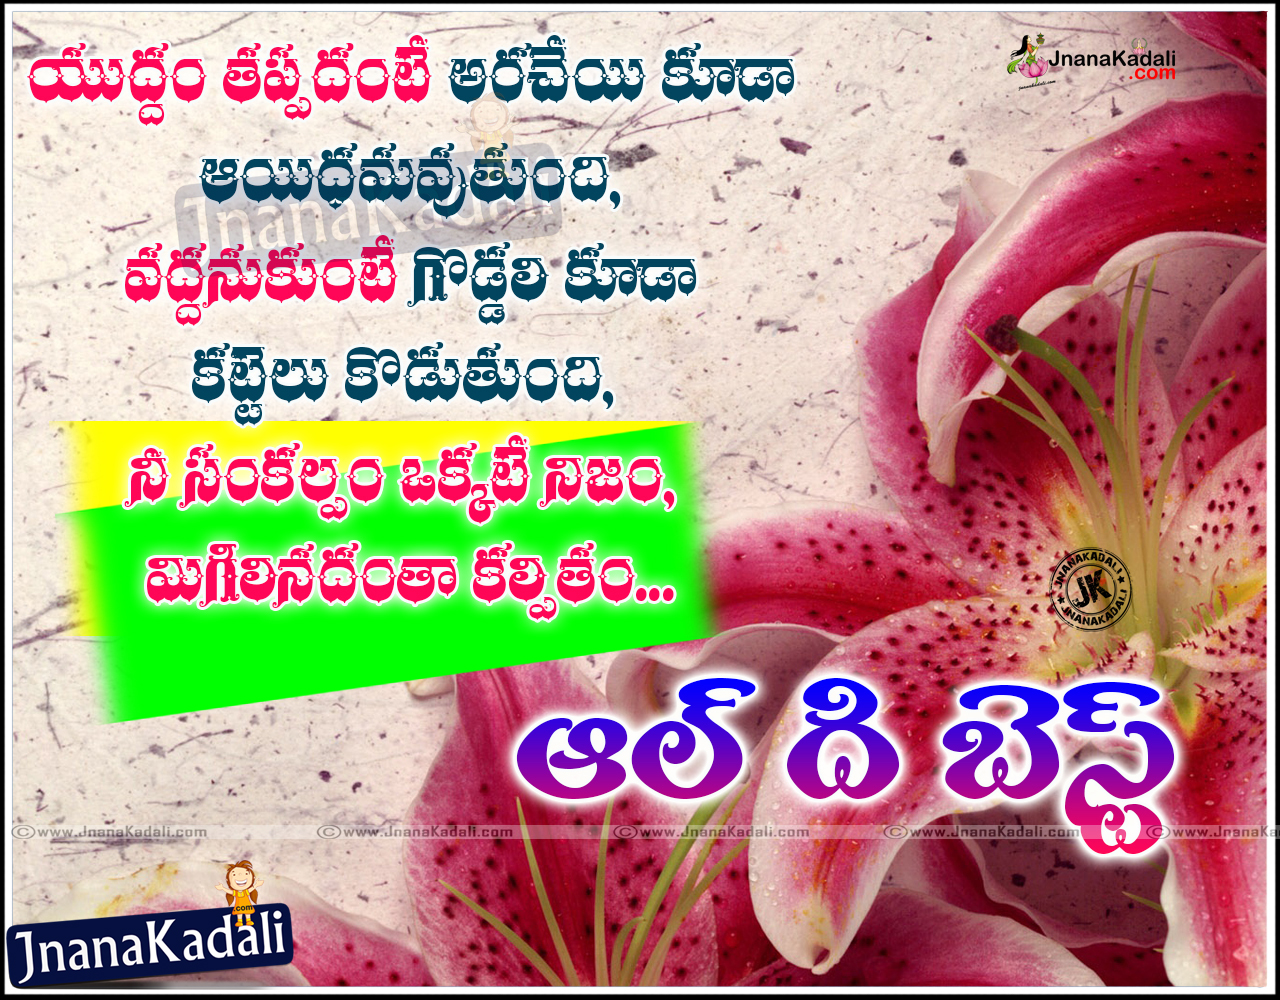 Telugu all the best wishes hd wallpapers in telugu jnana kadali all the best greeting cardstelugu best of luck greetingsall the best greetings kristyandbryce Image collections